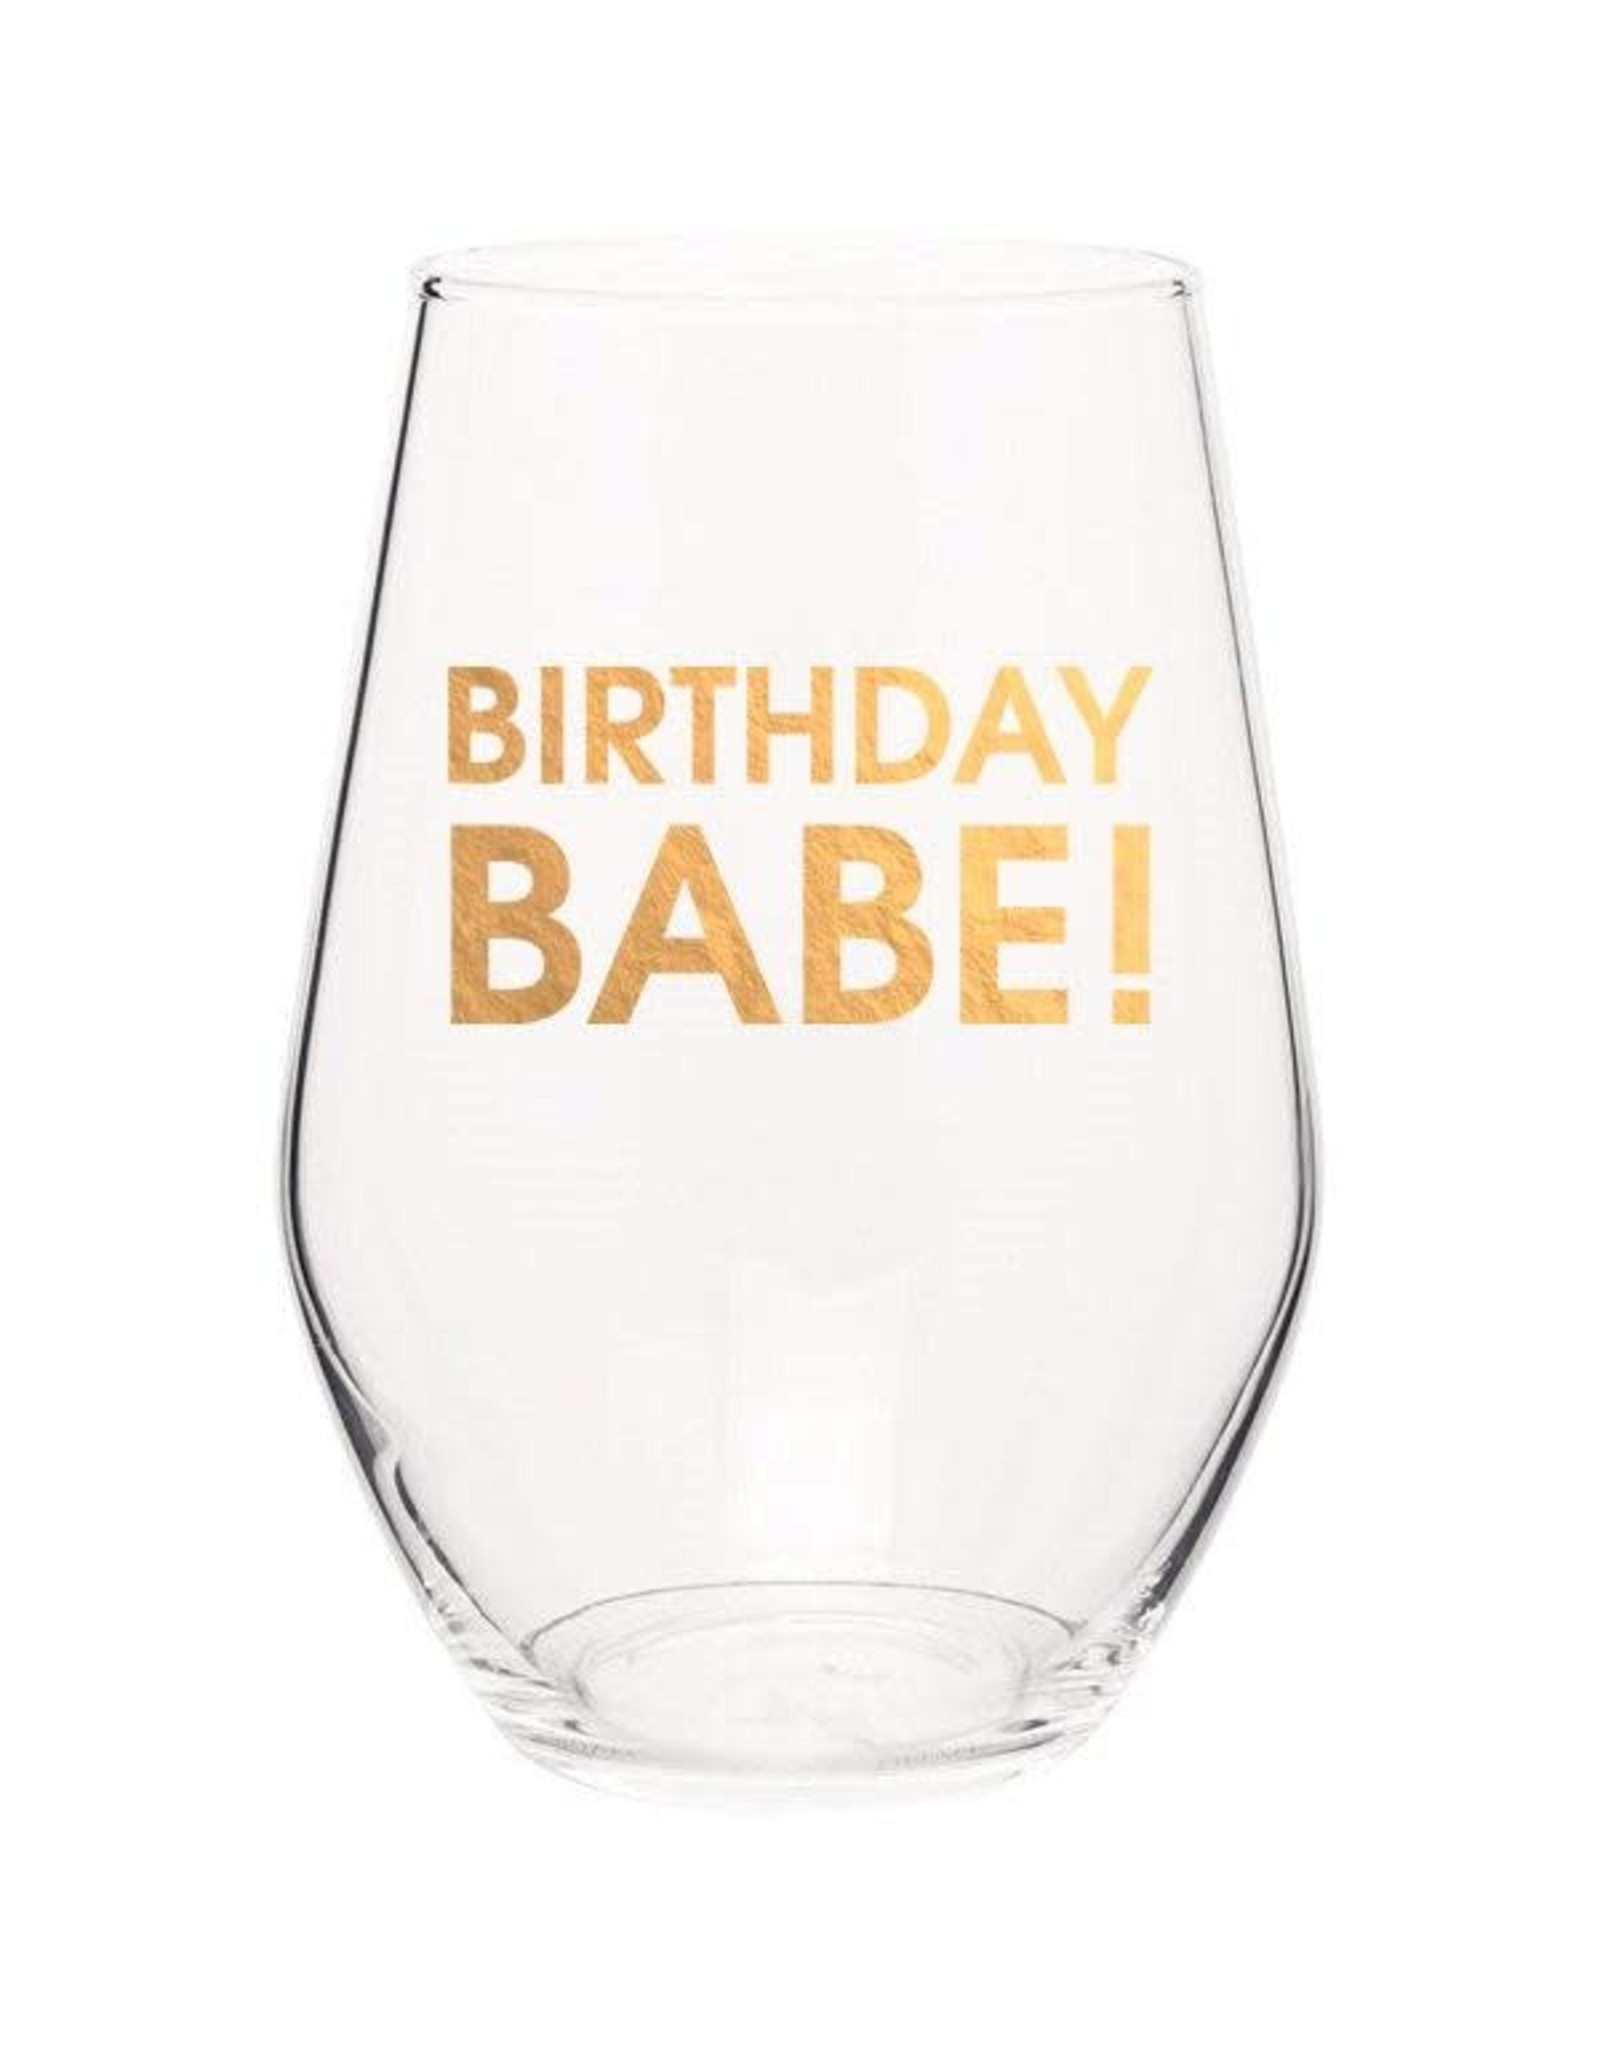 Chez Gagne Birthday Babe - Wine Glass